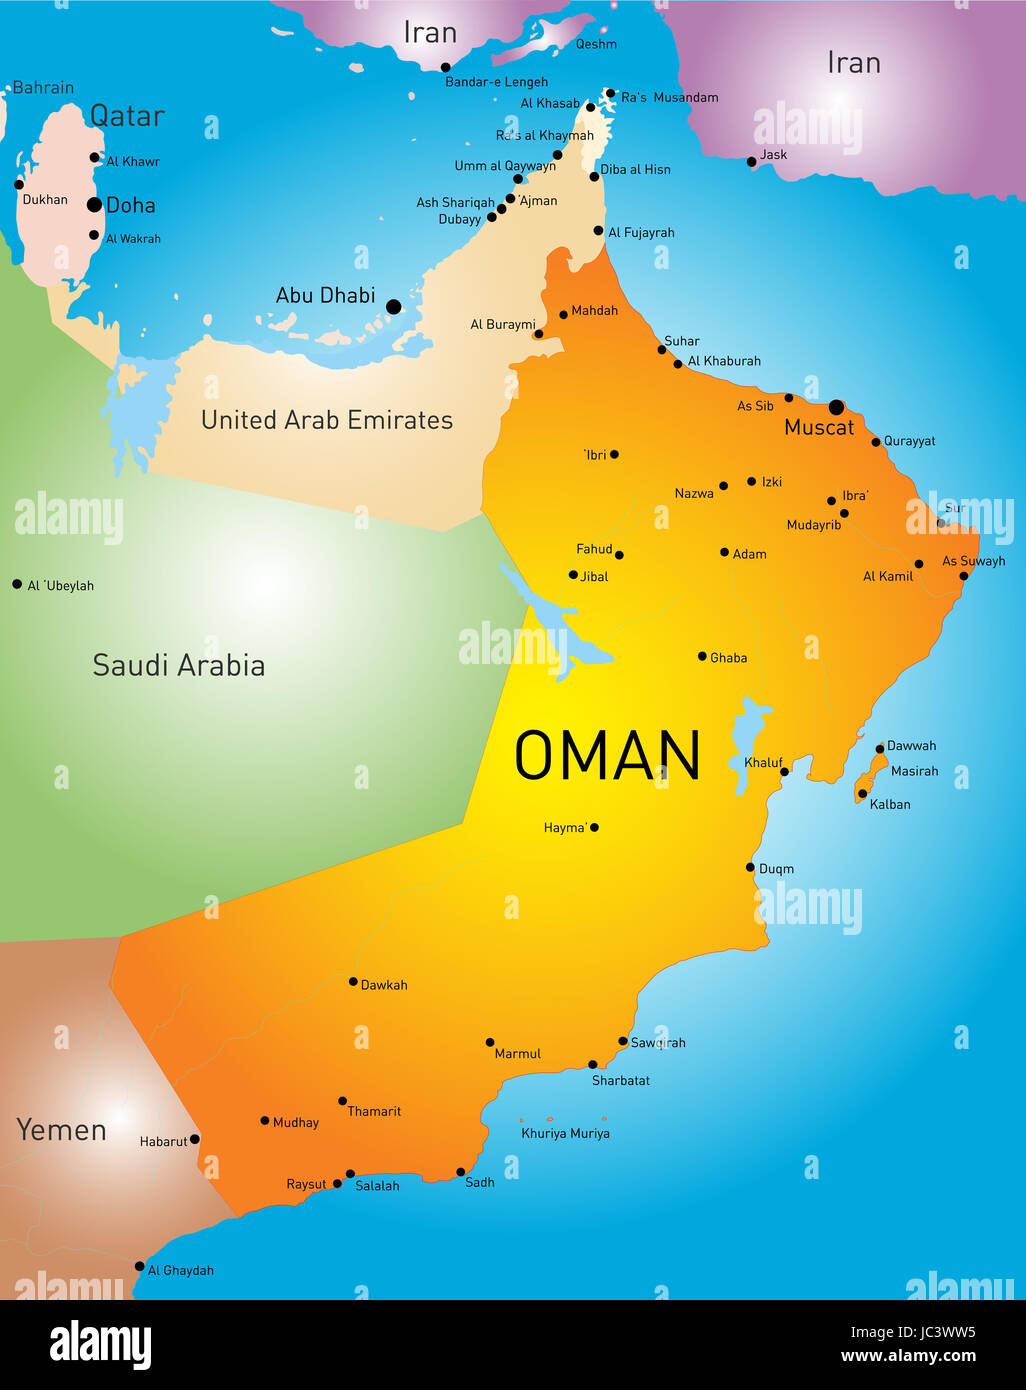 vector color map of Oman country Stock Photo 145144977 Alamy